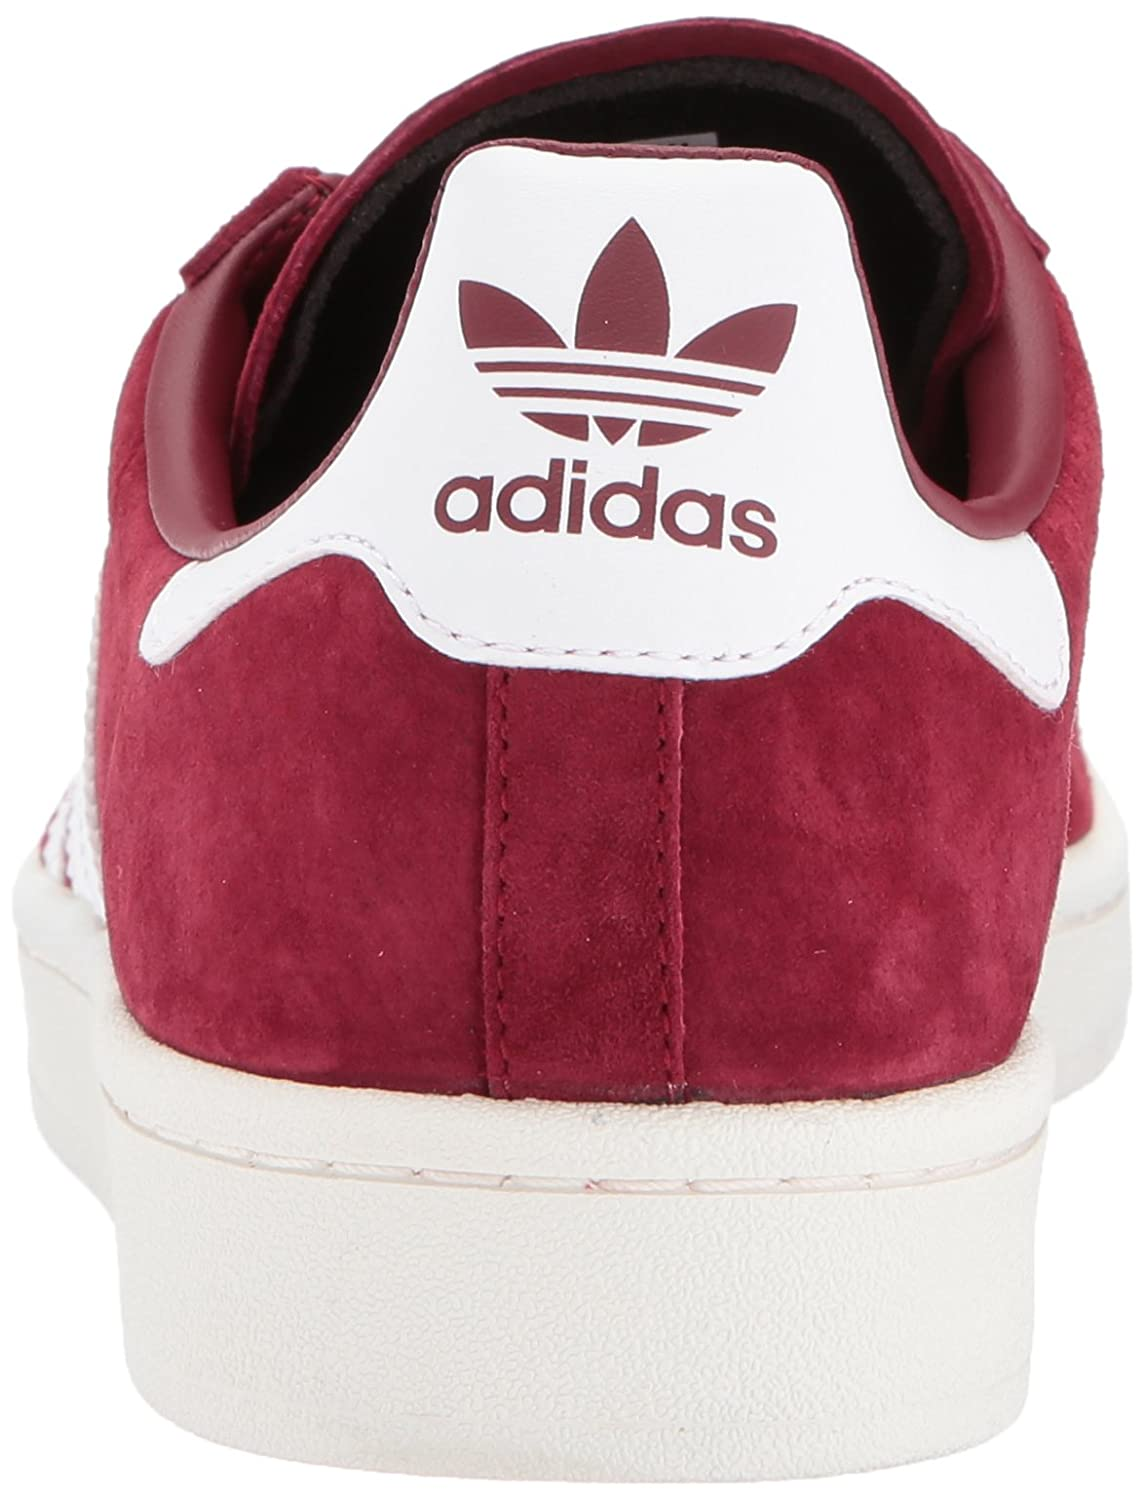 Adidas-Campus-Men-039-s-Casual-Fashion-Sneakers-Retro-Athletic-Shoes thumbnail 28